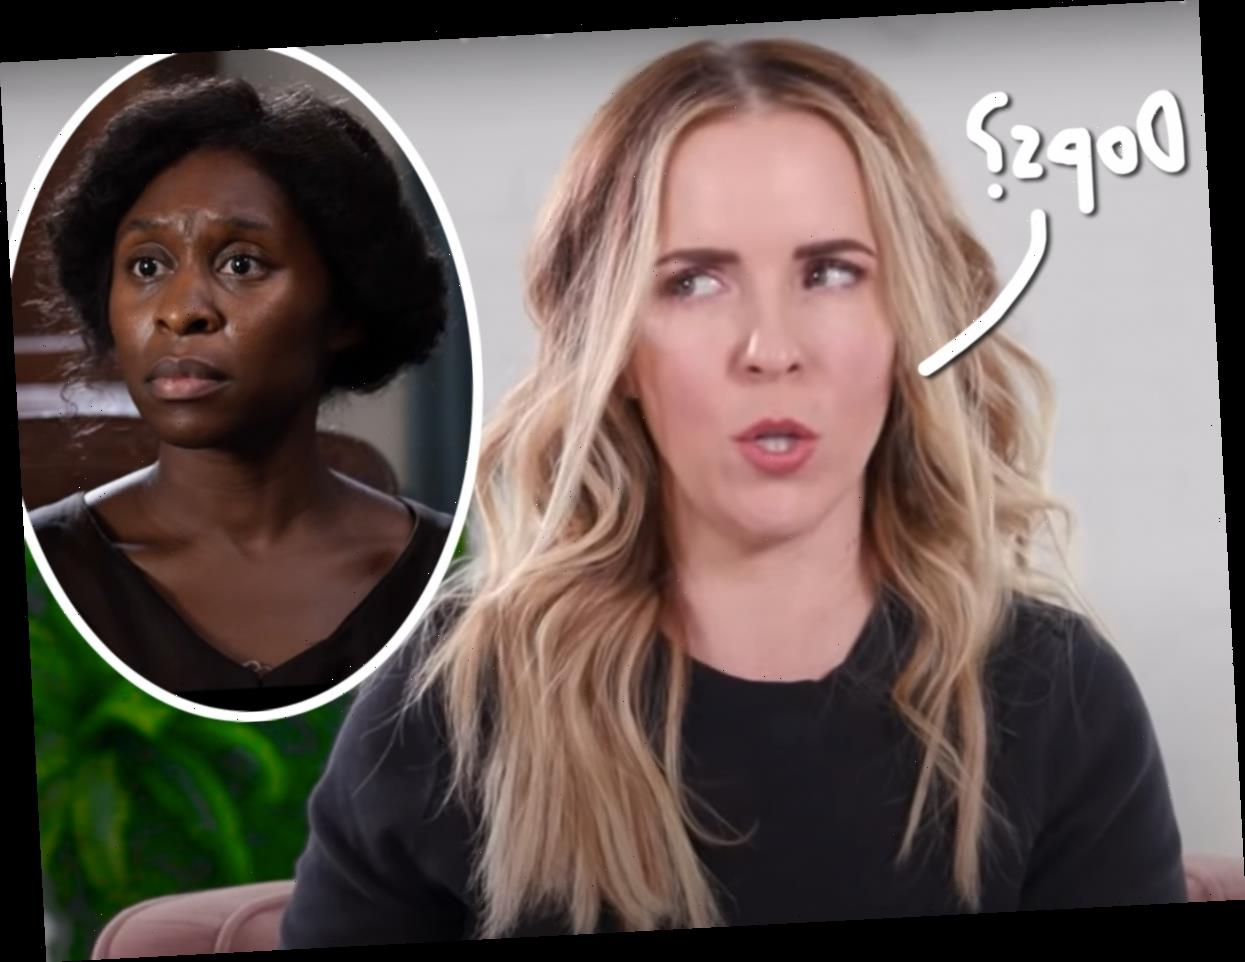 Girl Wash Your Face Author Rachel Hollis Responds To Privilege Backlash By Comparing Herself To Harriet Tubman!